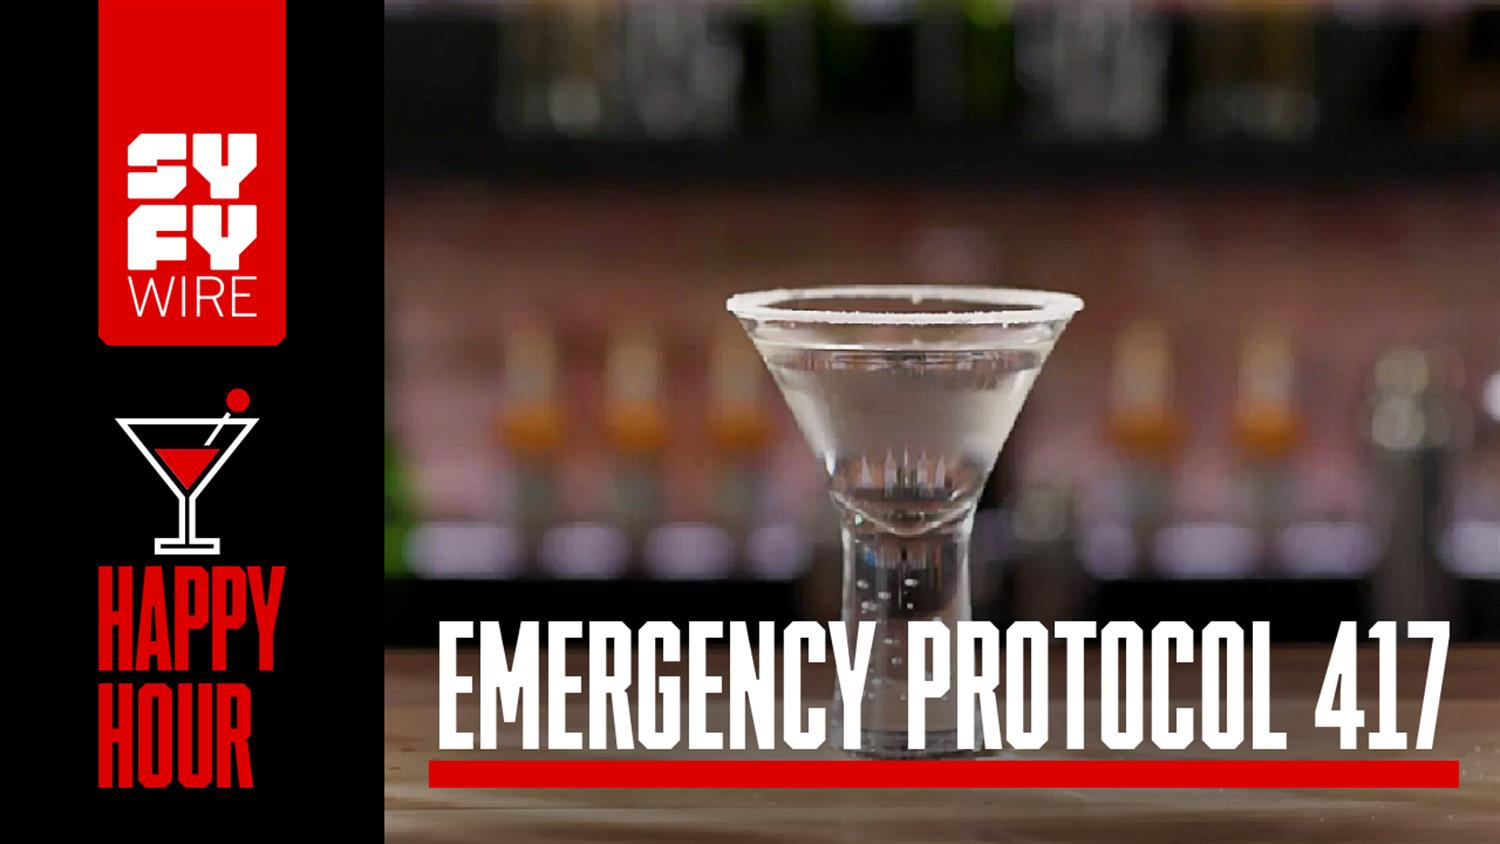 How to Make Emergency Protocol 417 (SYFYWIRE Happy Hour)